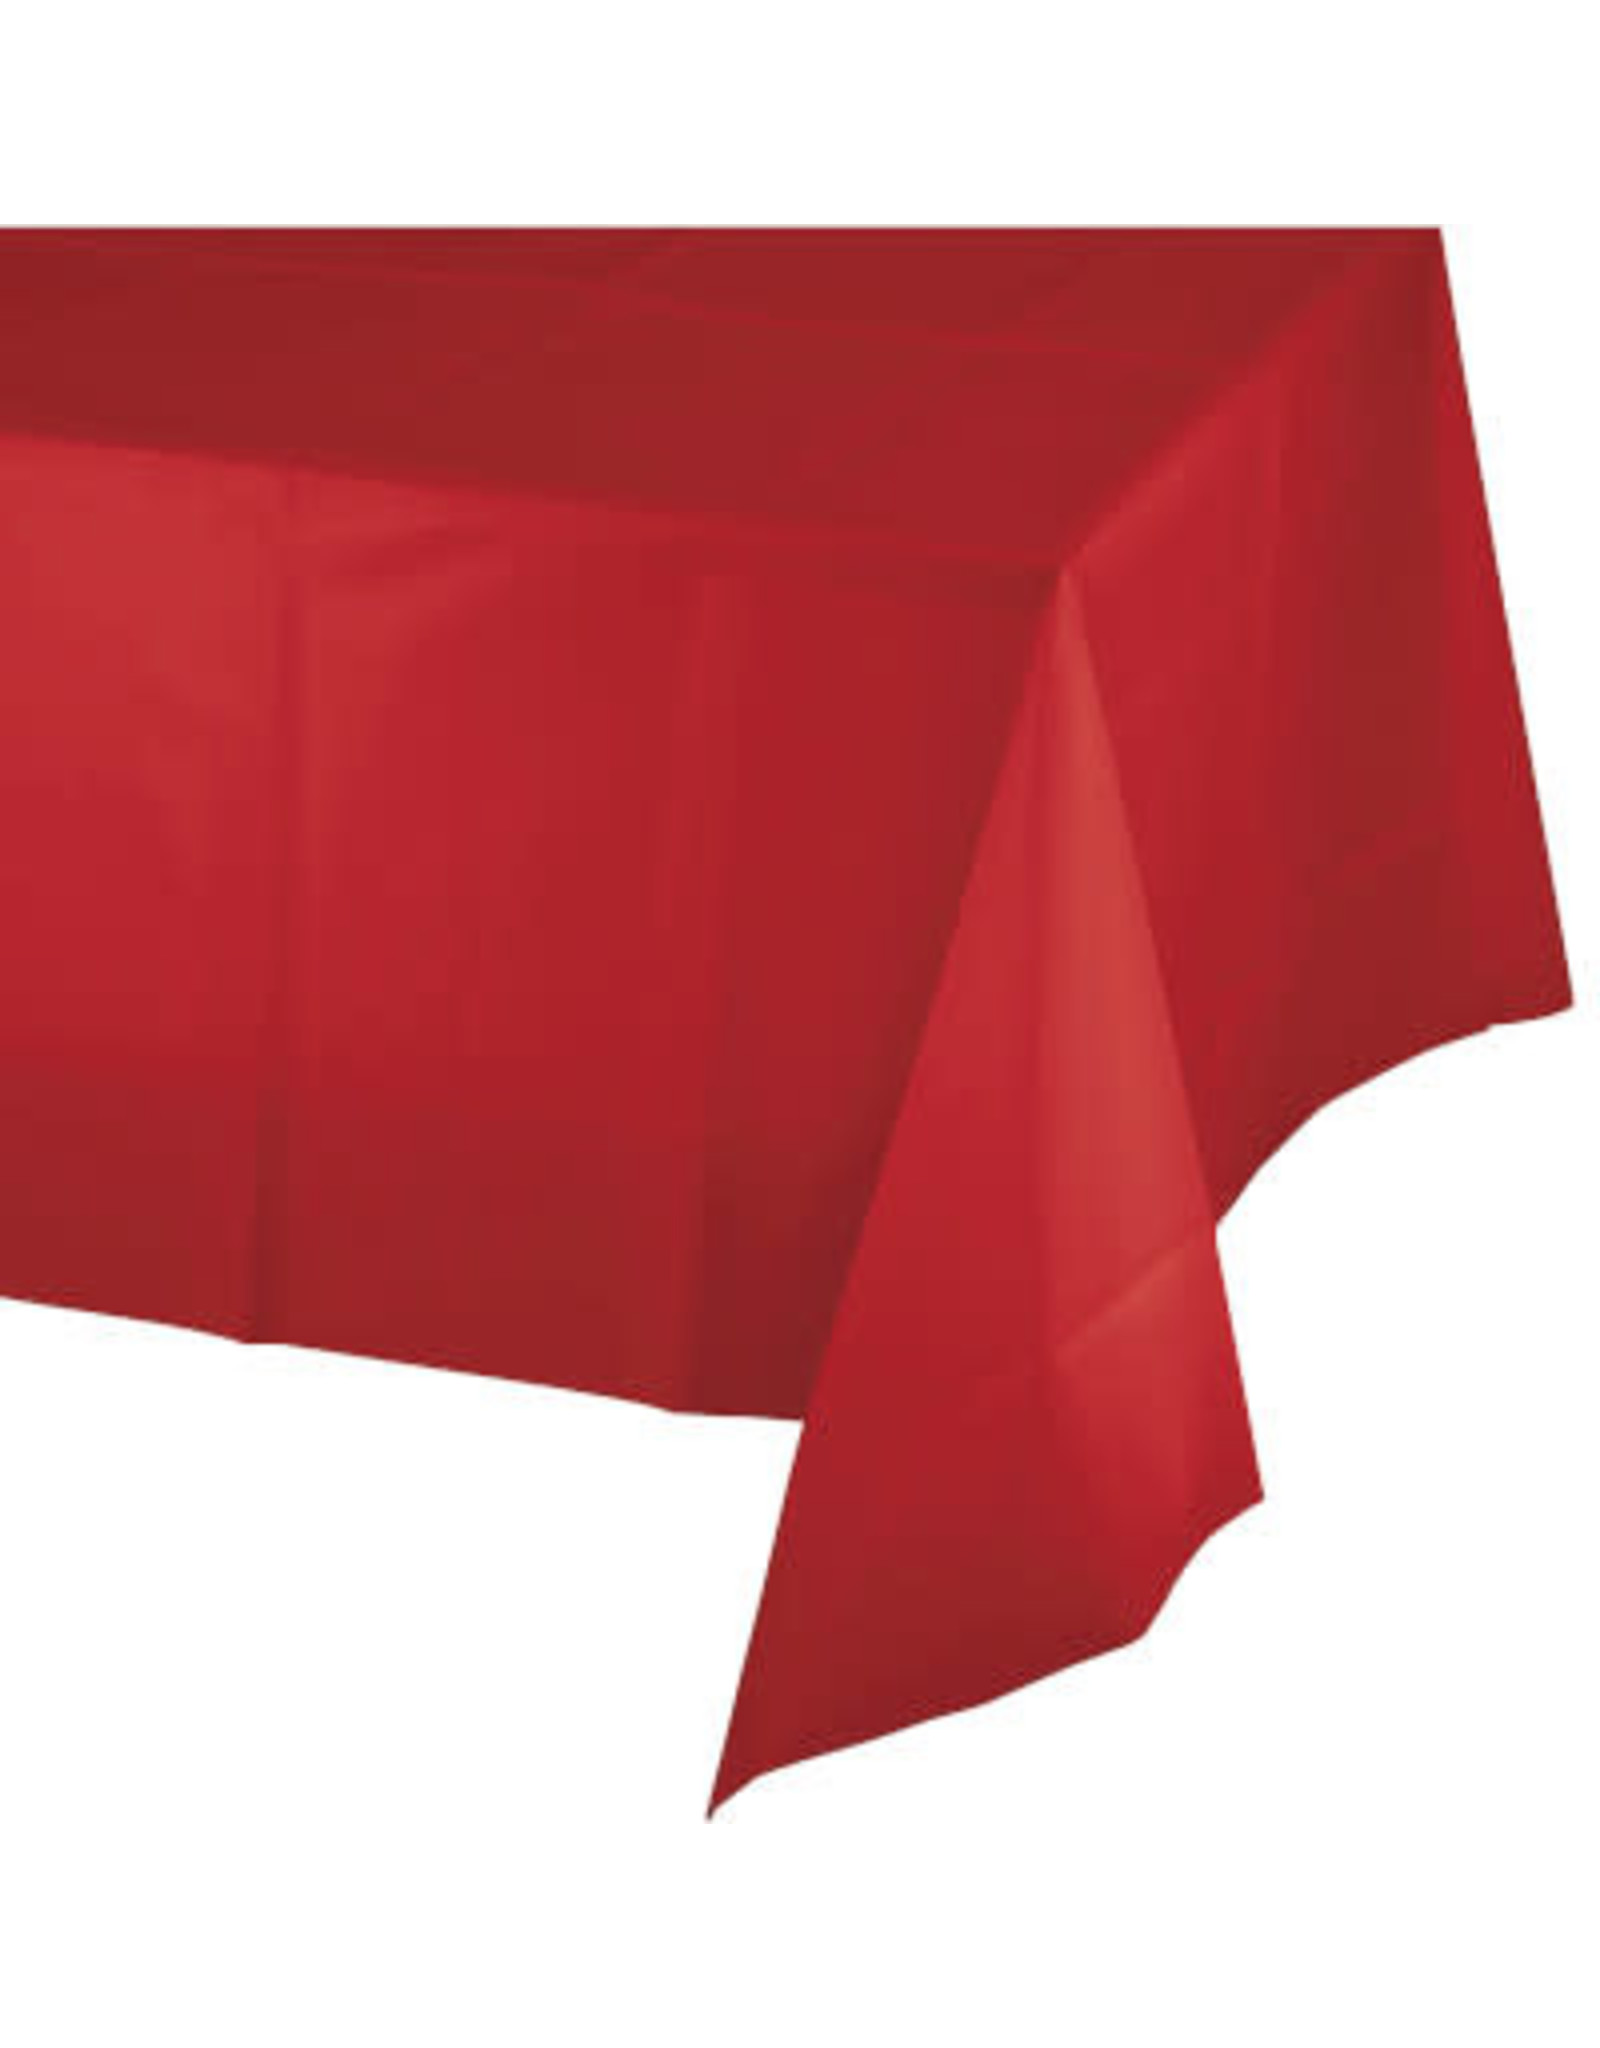 Touch of Color CLASSIC RED PLASTIC TABLECLOTH